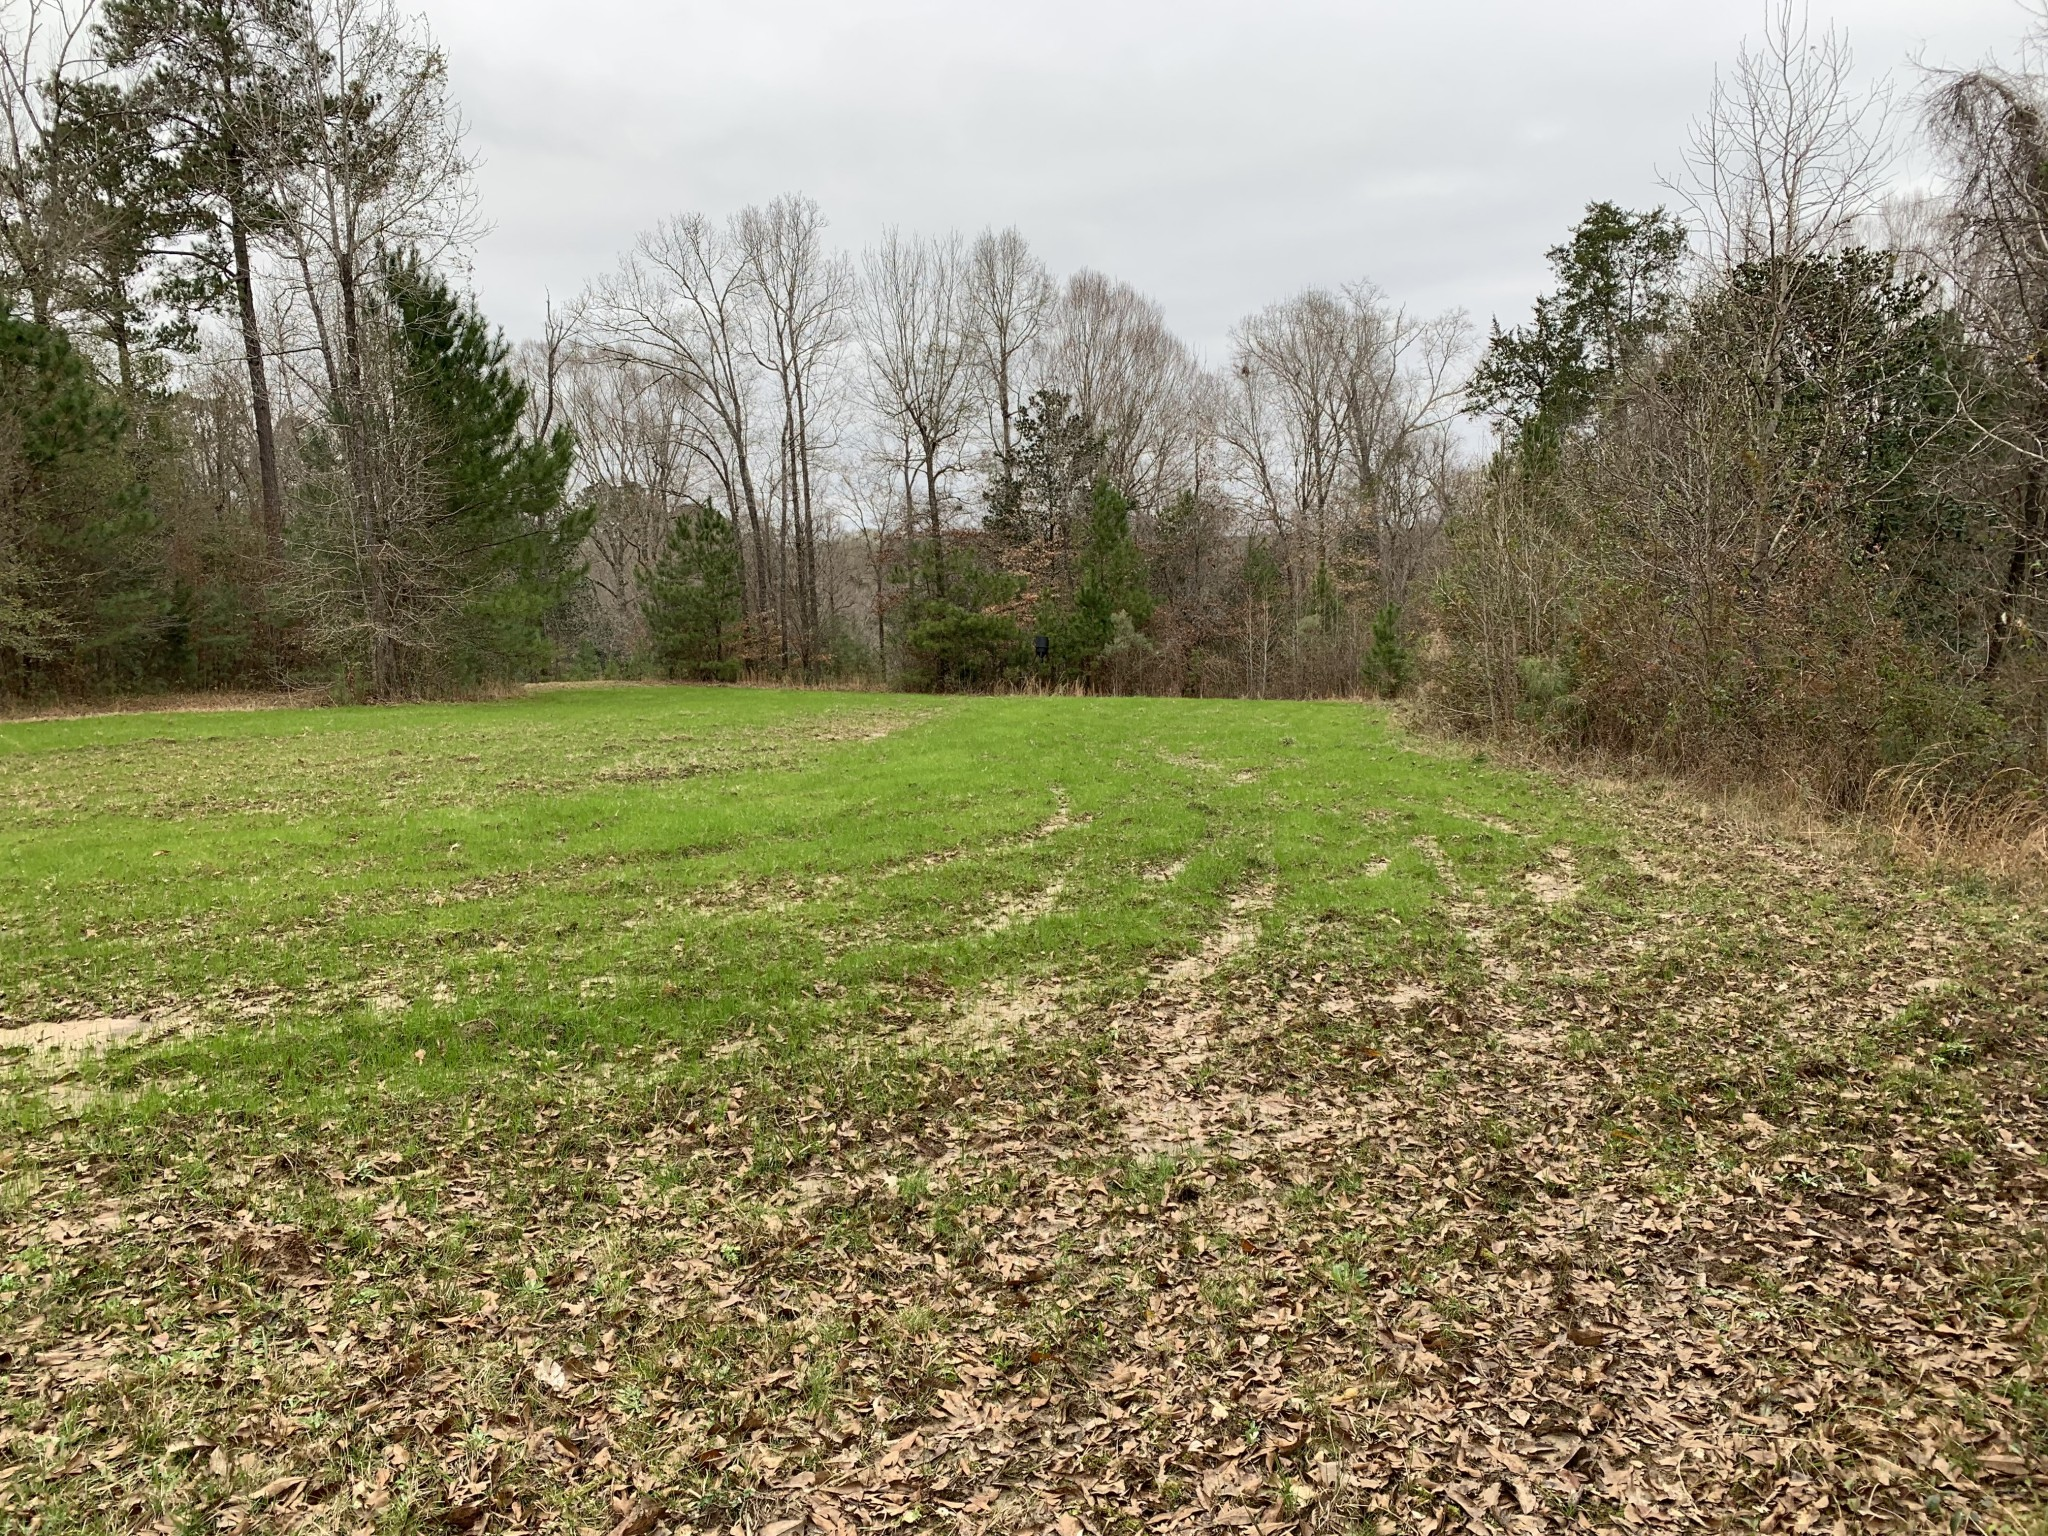 Cheerful Valley Lot 1A, Lot 1B, and Lot 1C Tracts, West Feliciana Parish, 14 Acres +/-